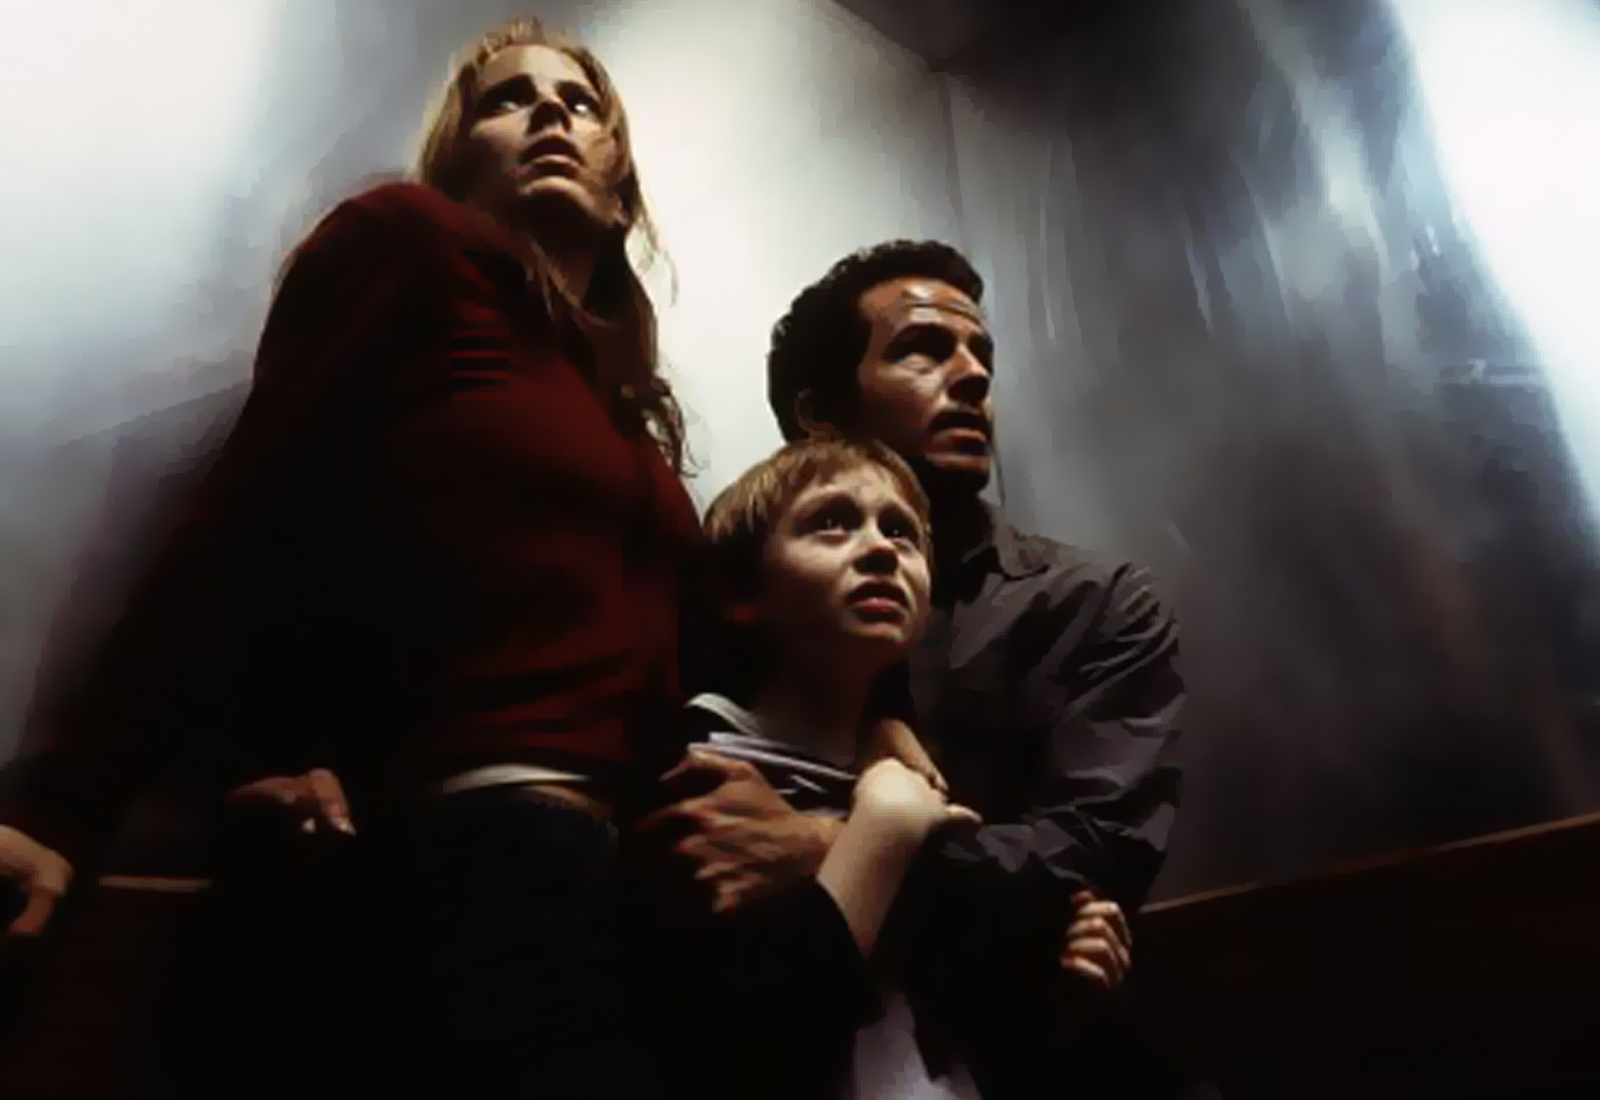 (l to r) Emma Caulfield, her younger brother Lee Cormie and Chaney Kley flee from the avenging Matilda in Darkness Falls (2003)